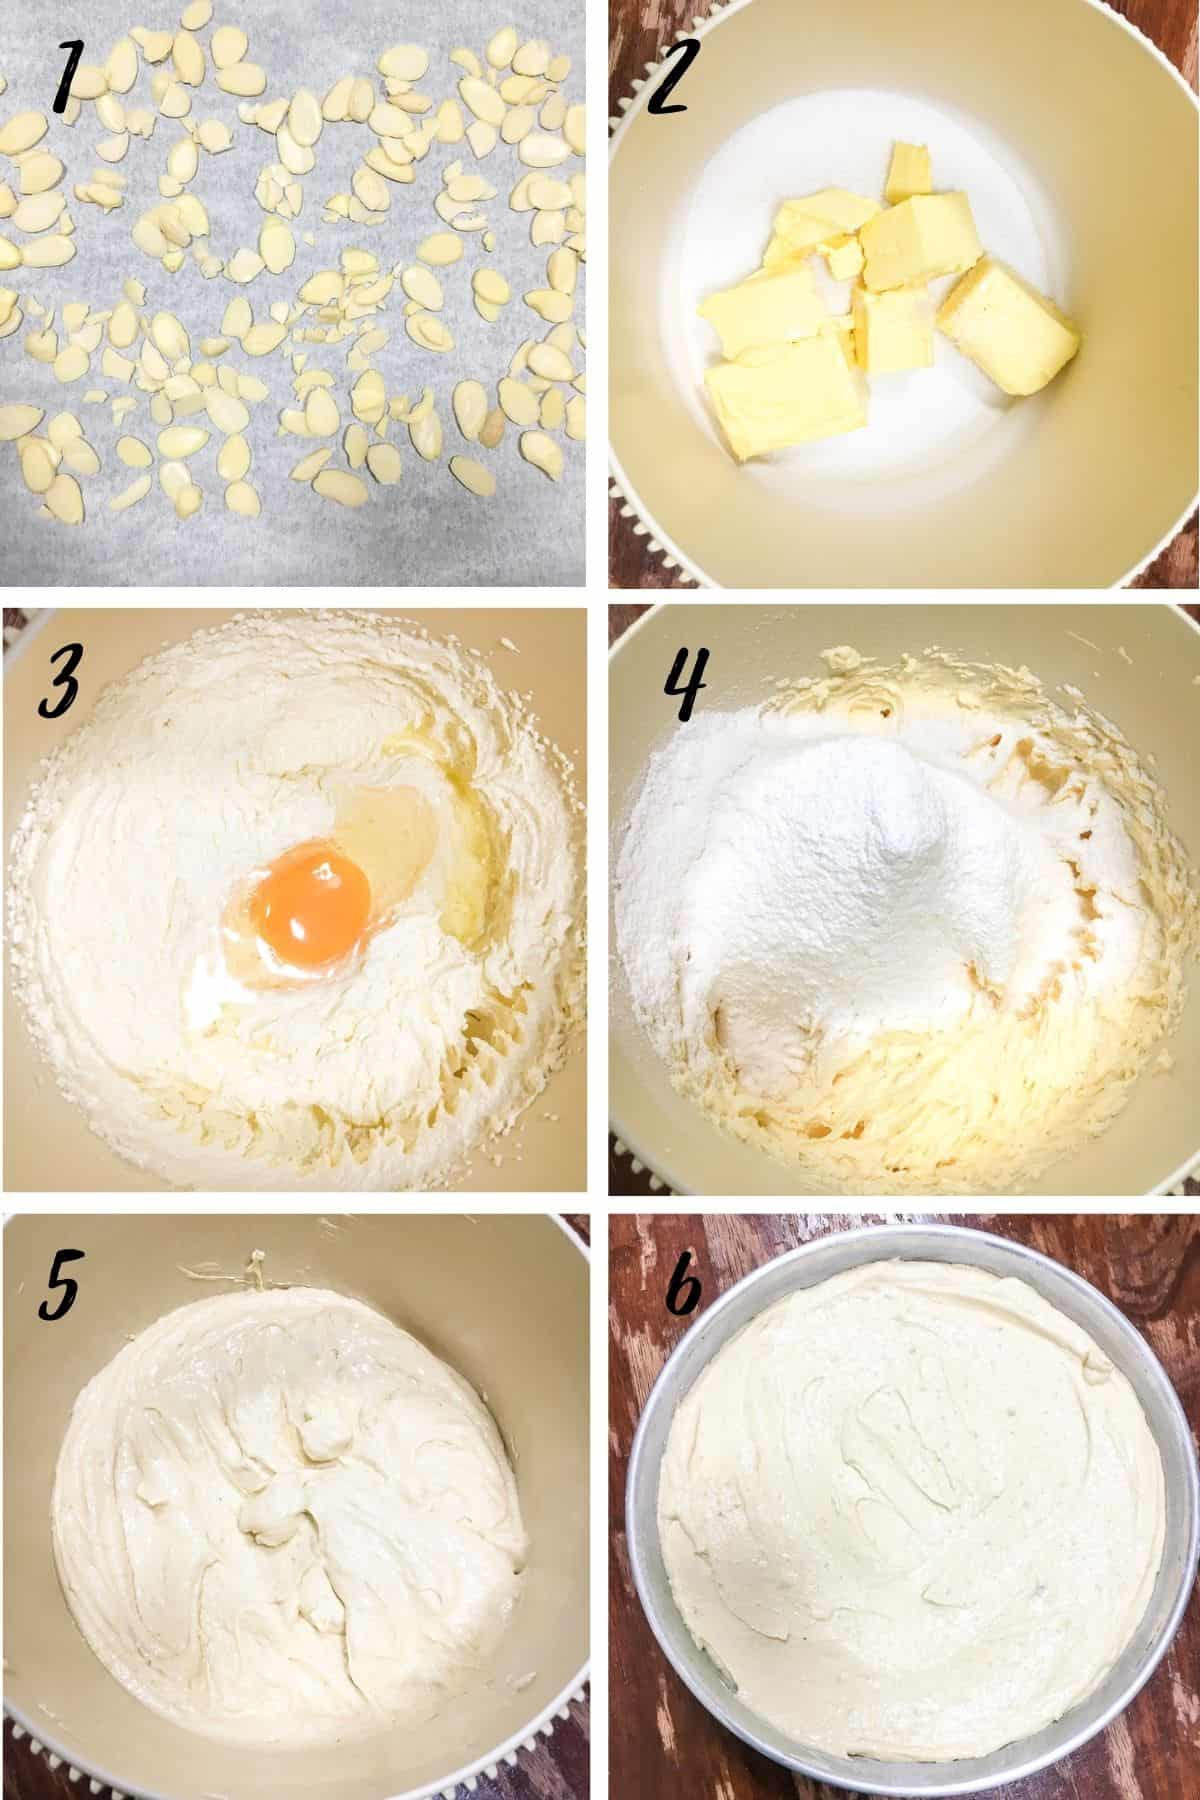 Poster with 6 images showing how to mix batter for a round cake